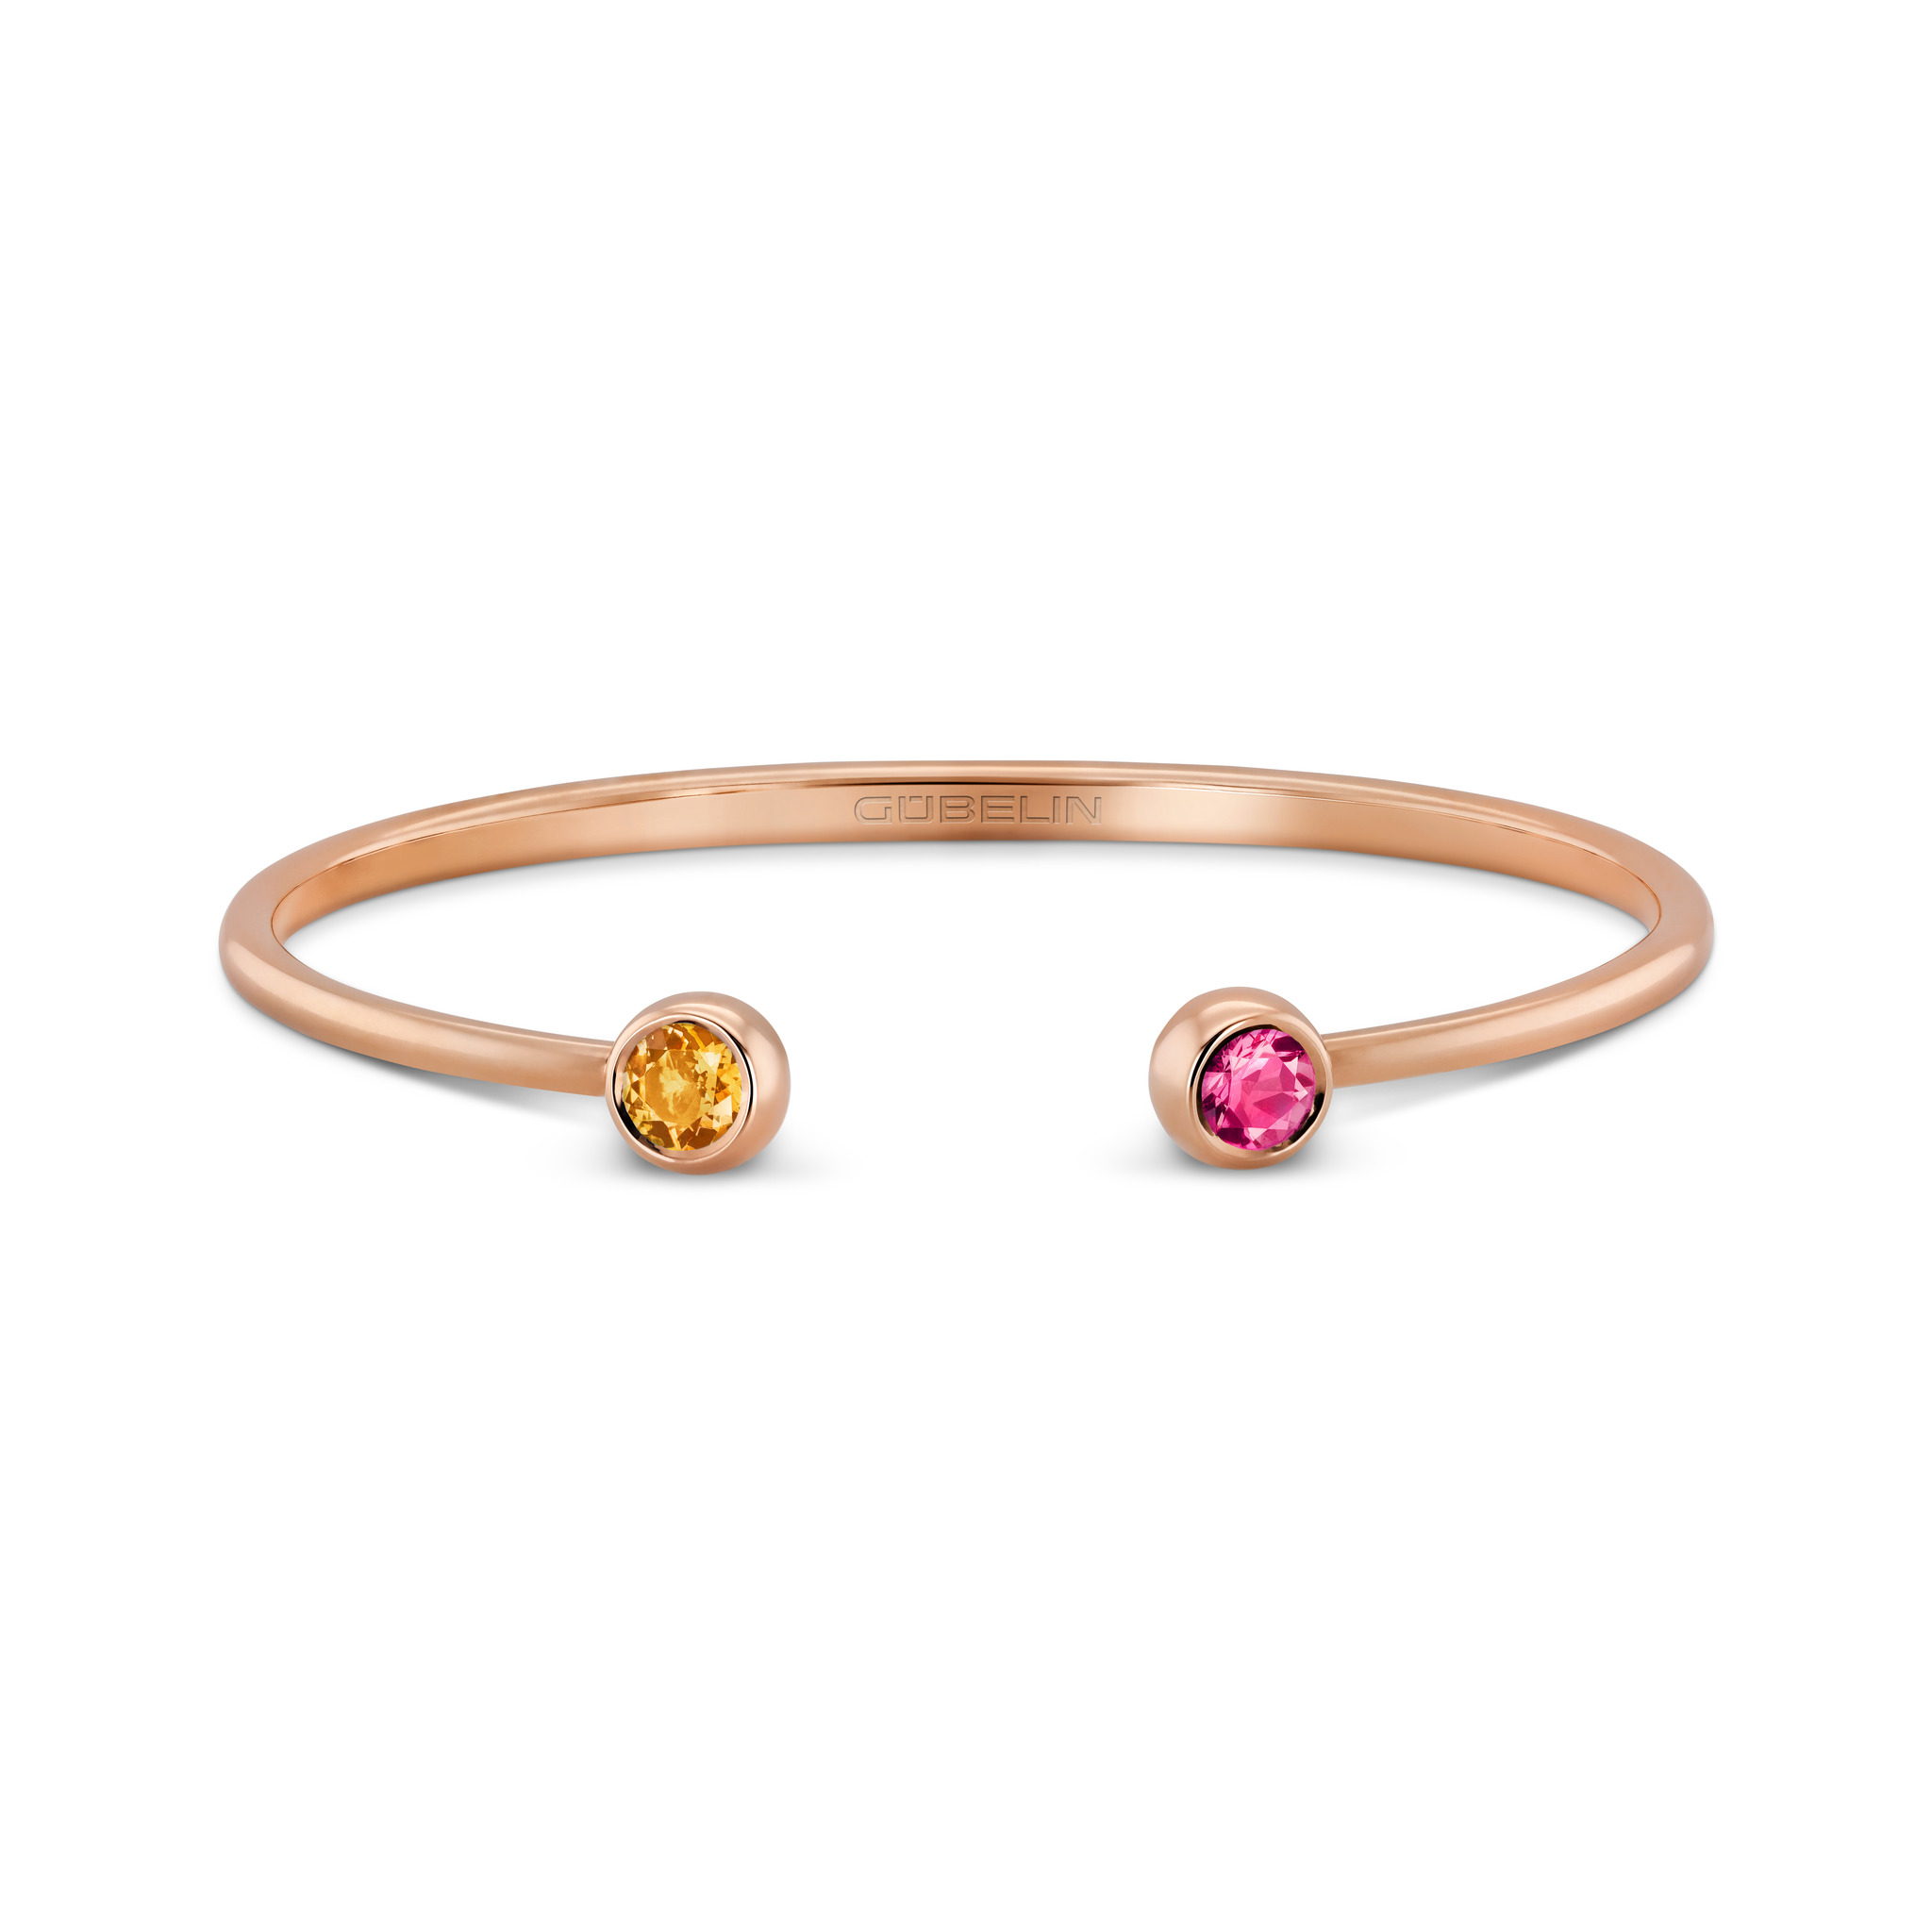 Bangle with coloured gemstones